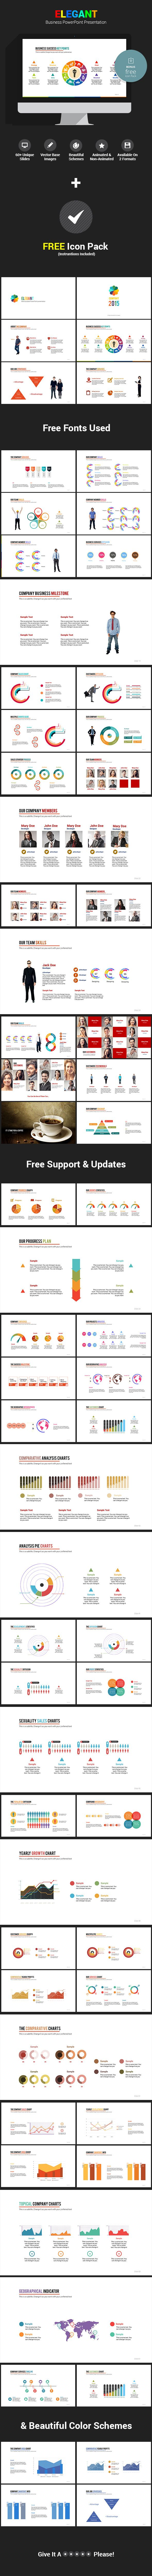 718 best powerpoint templates images on pinterest presentation buy elegant business powerpoint presentation by pxdeveloper on graphicriver this modern powerpoint presentation is a size presentation template that can toneelgroepblik Gallery